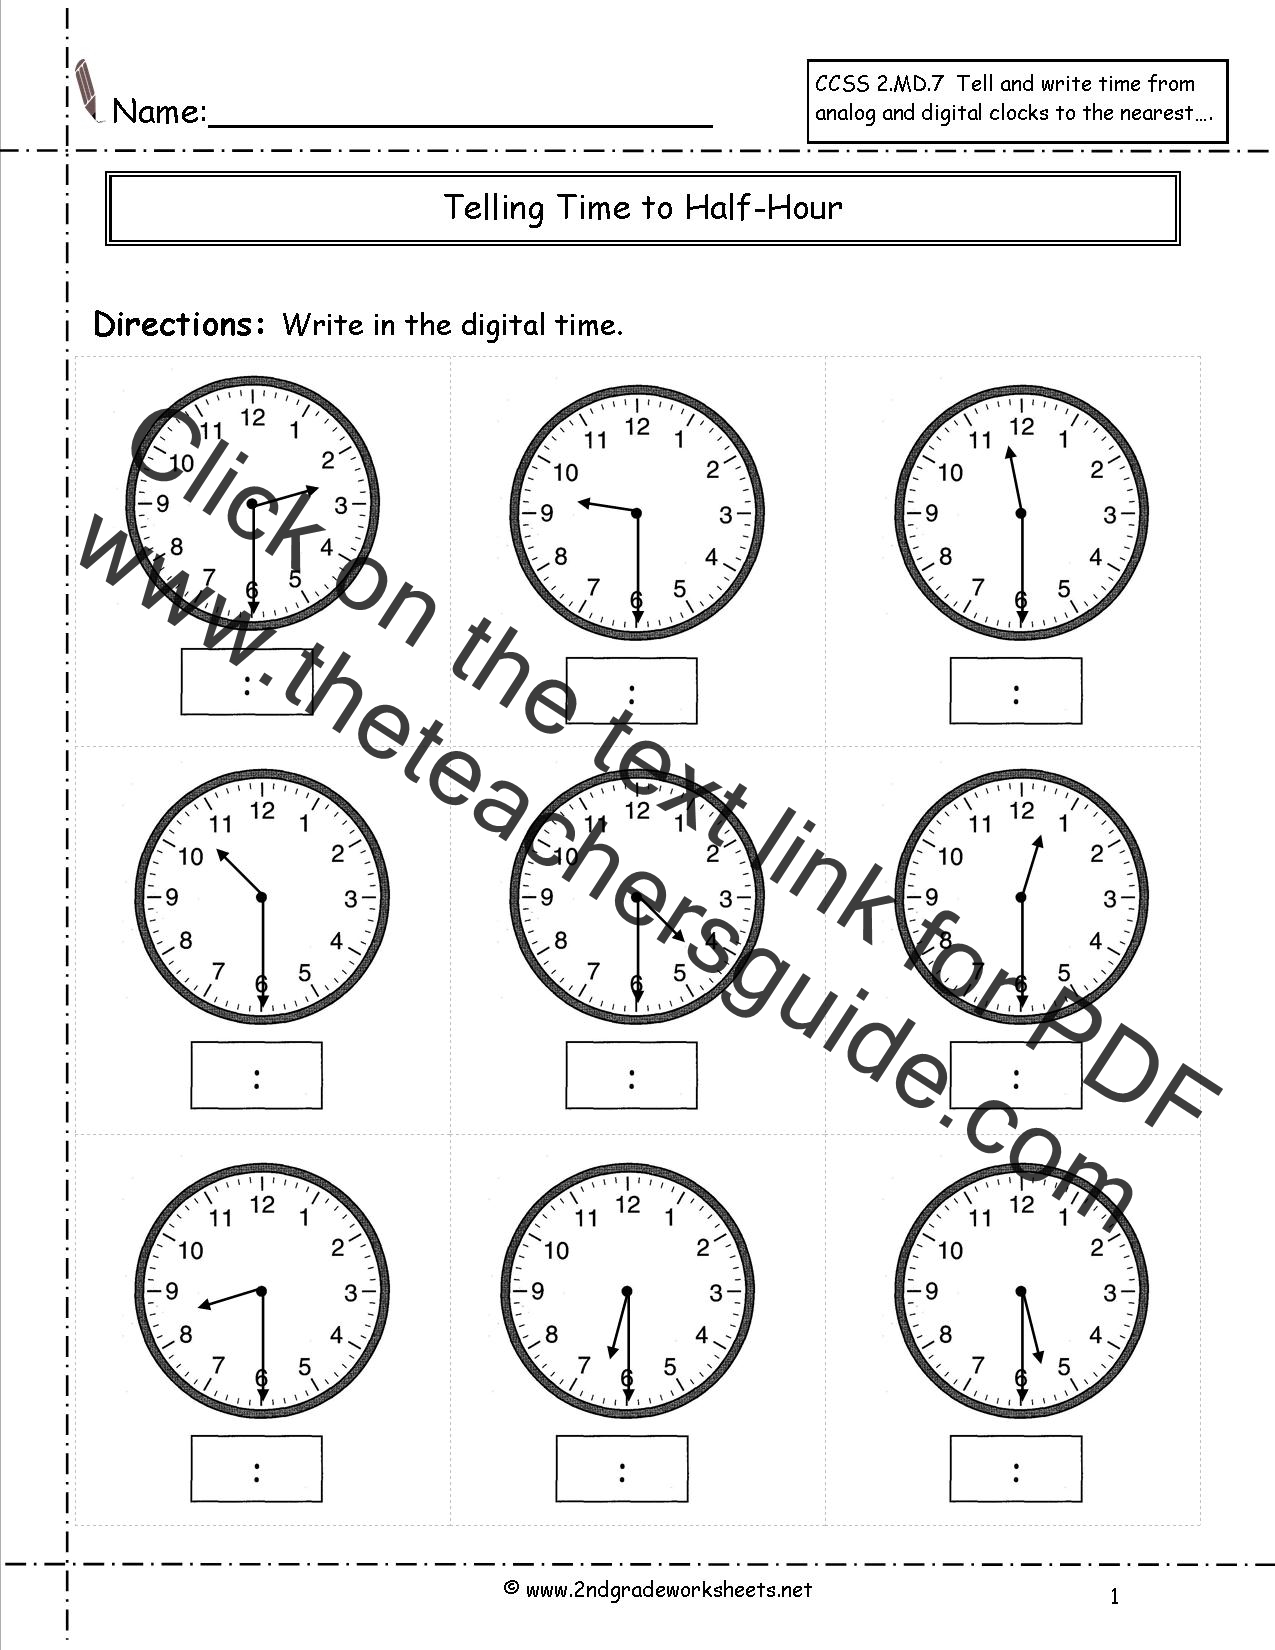 Worksheets Telling Time Worksheets 2nd Grade telling and writing time worksheets to nearest half hour worksheet